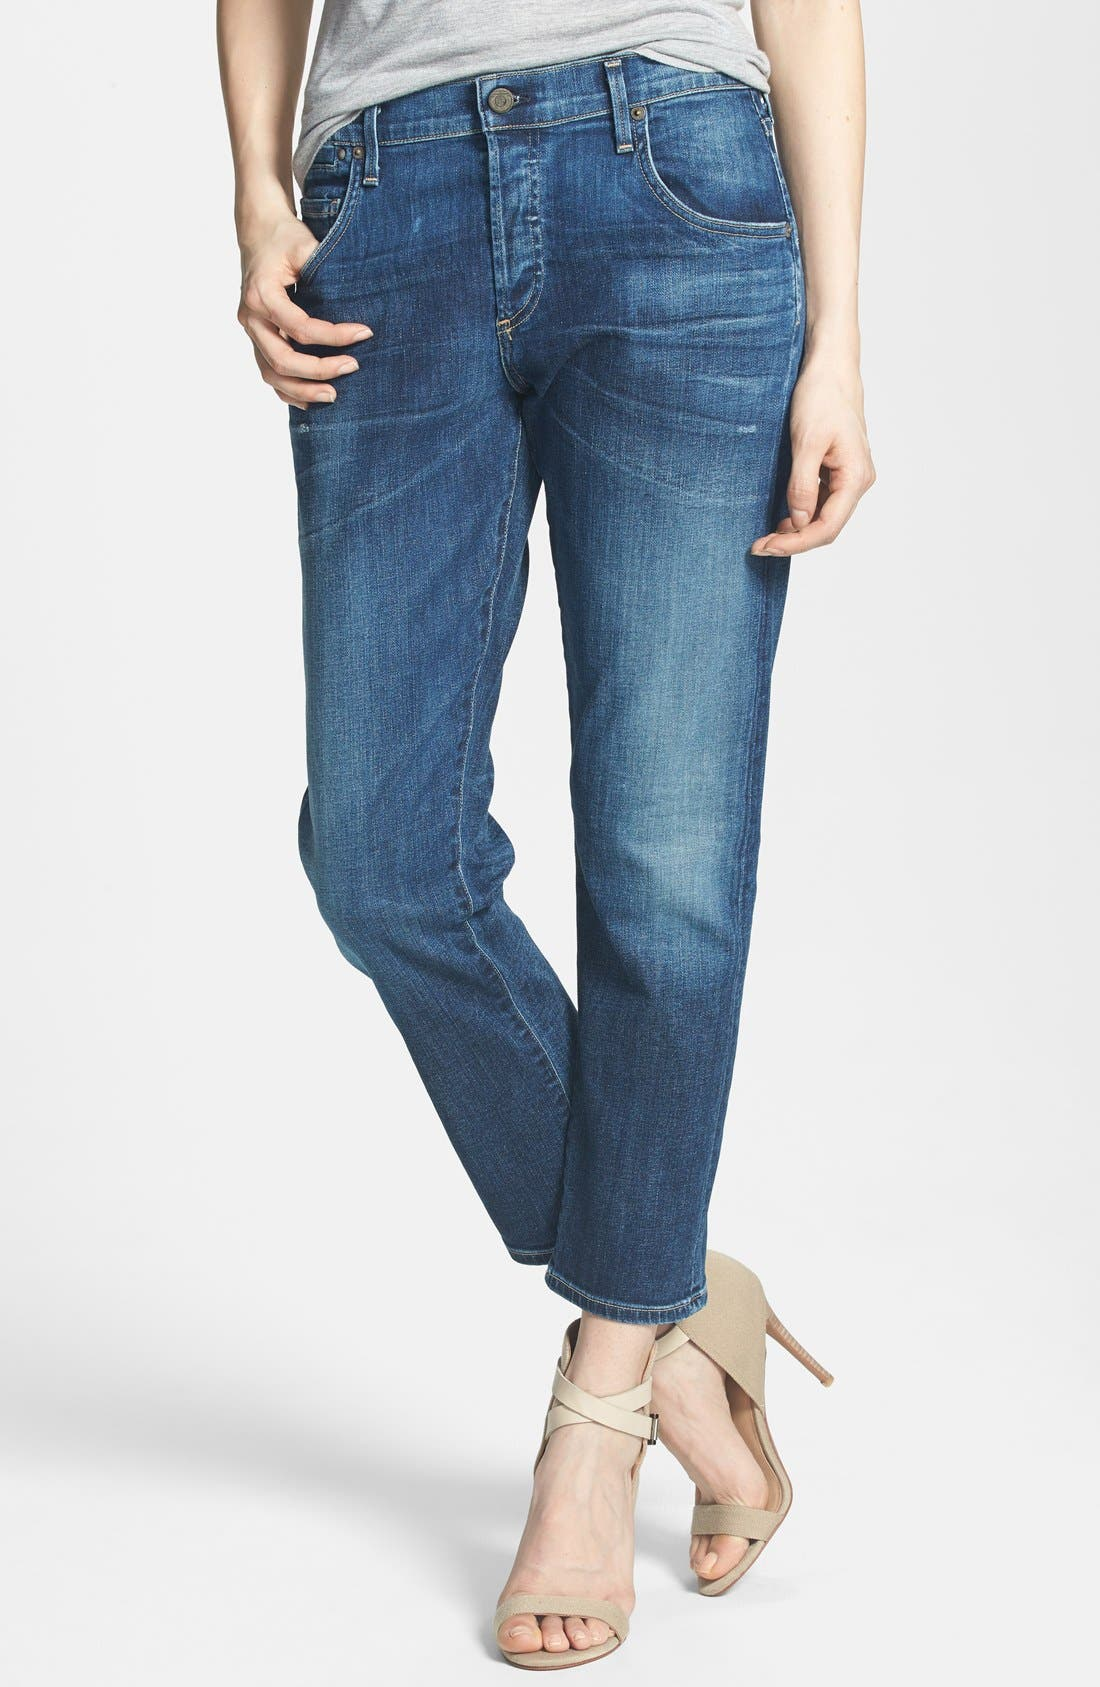 Alternate Image 1 Selected - Citizens of Humanity Emerson Slim Boyfriend Jeans (Blue Ridge)